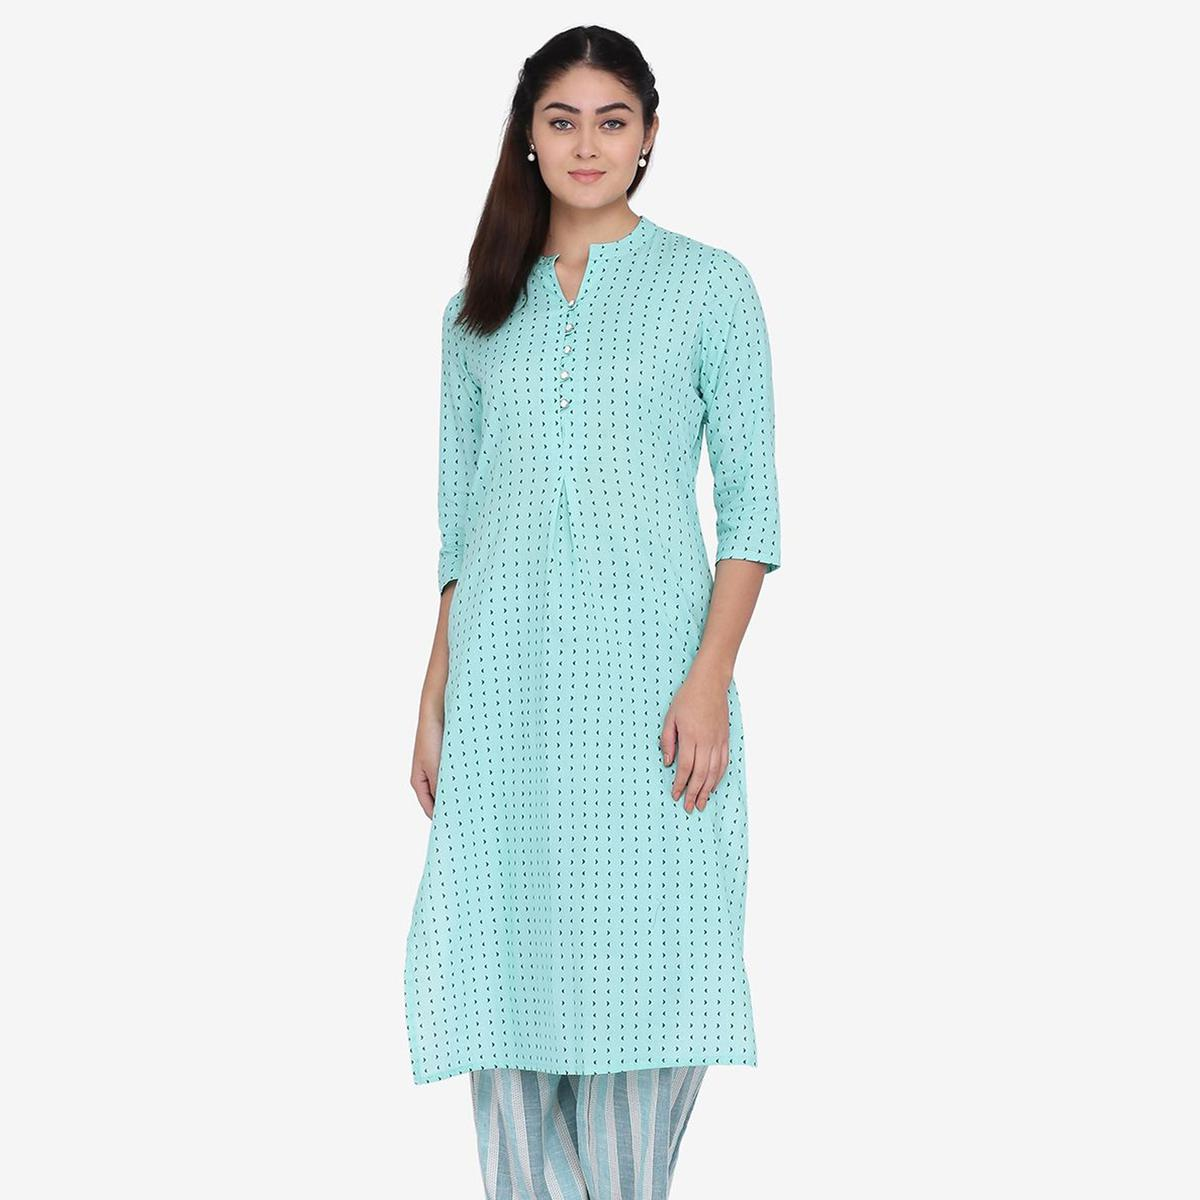 Marvellous Blue Colored Casual Wear Abstract Printed Calf Length Cambric Cotton Straight Kurti